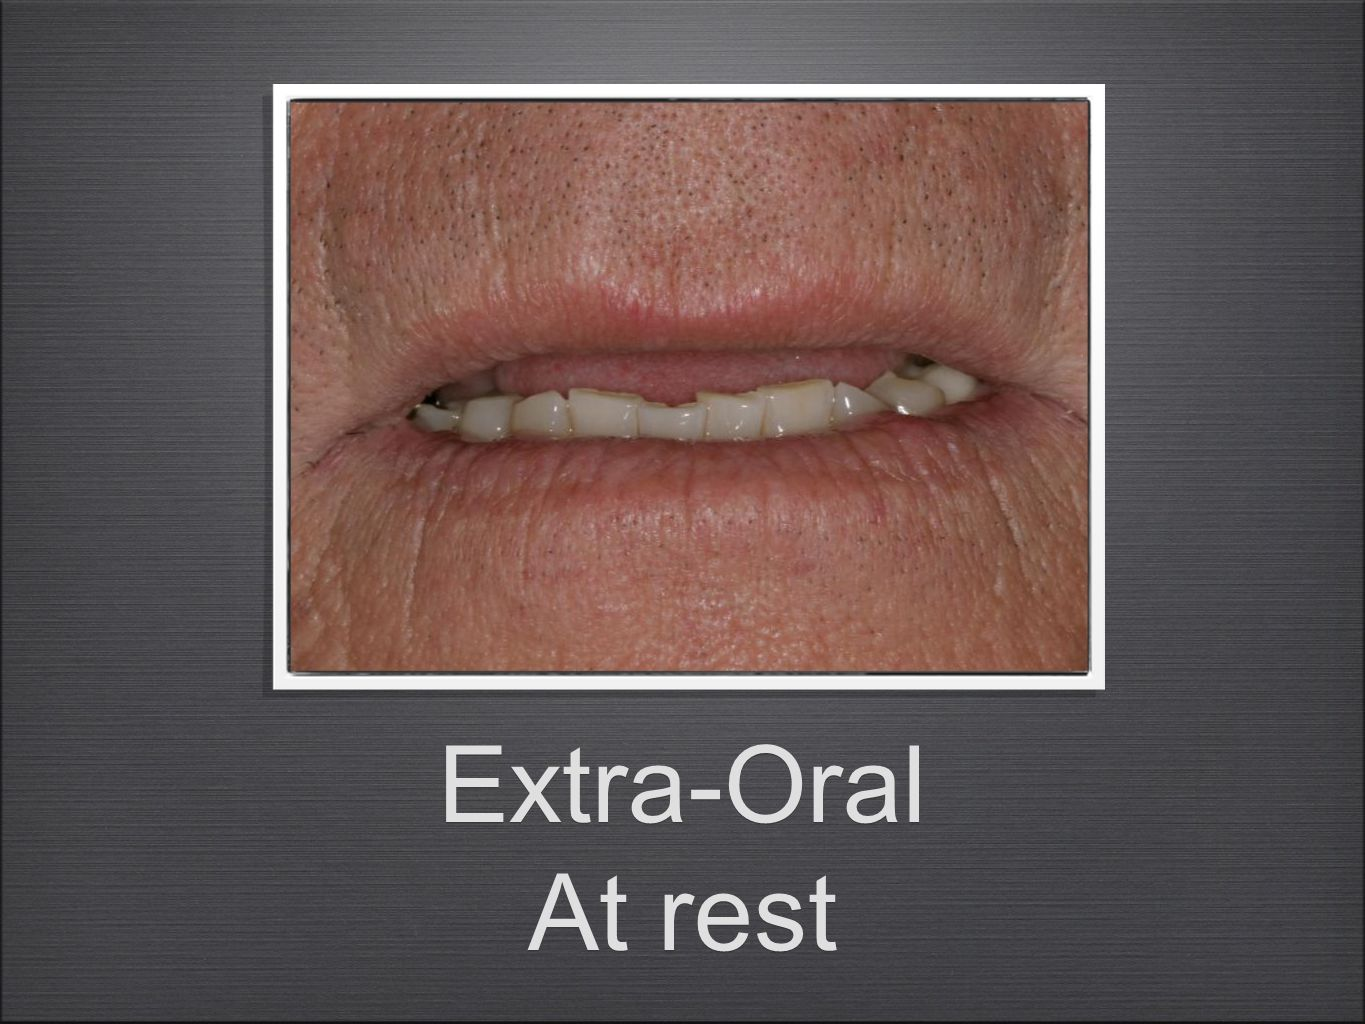 Extra-Oral At rest